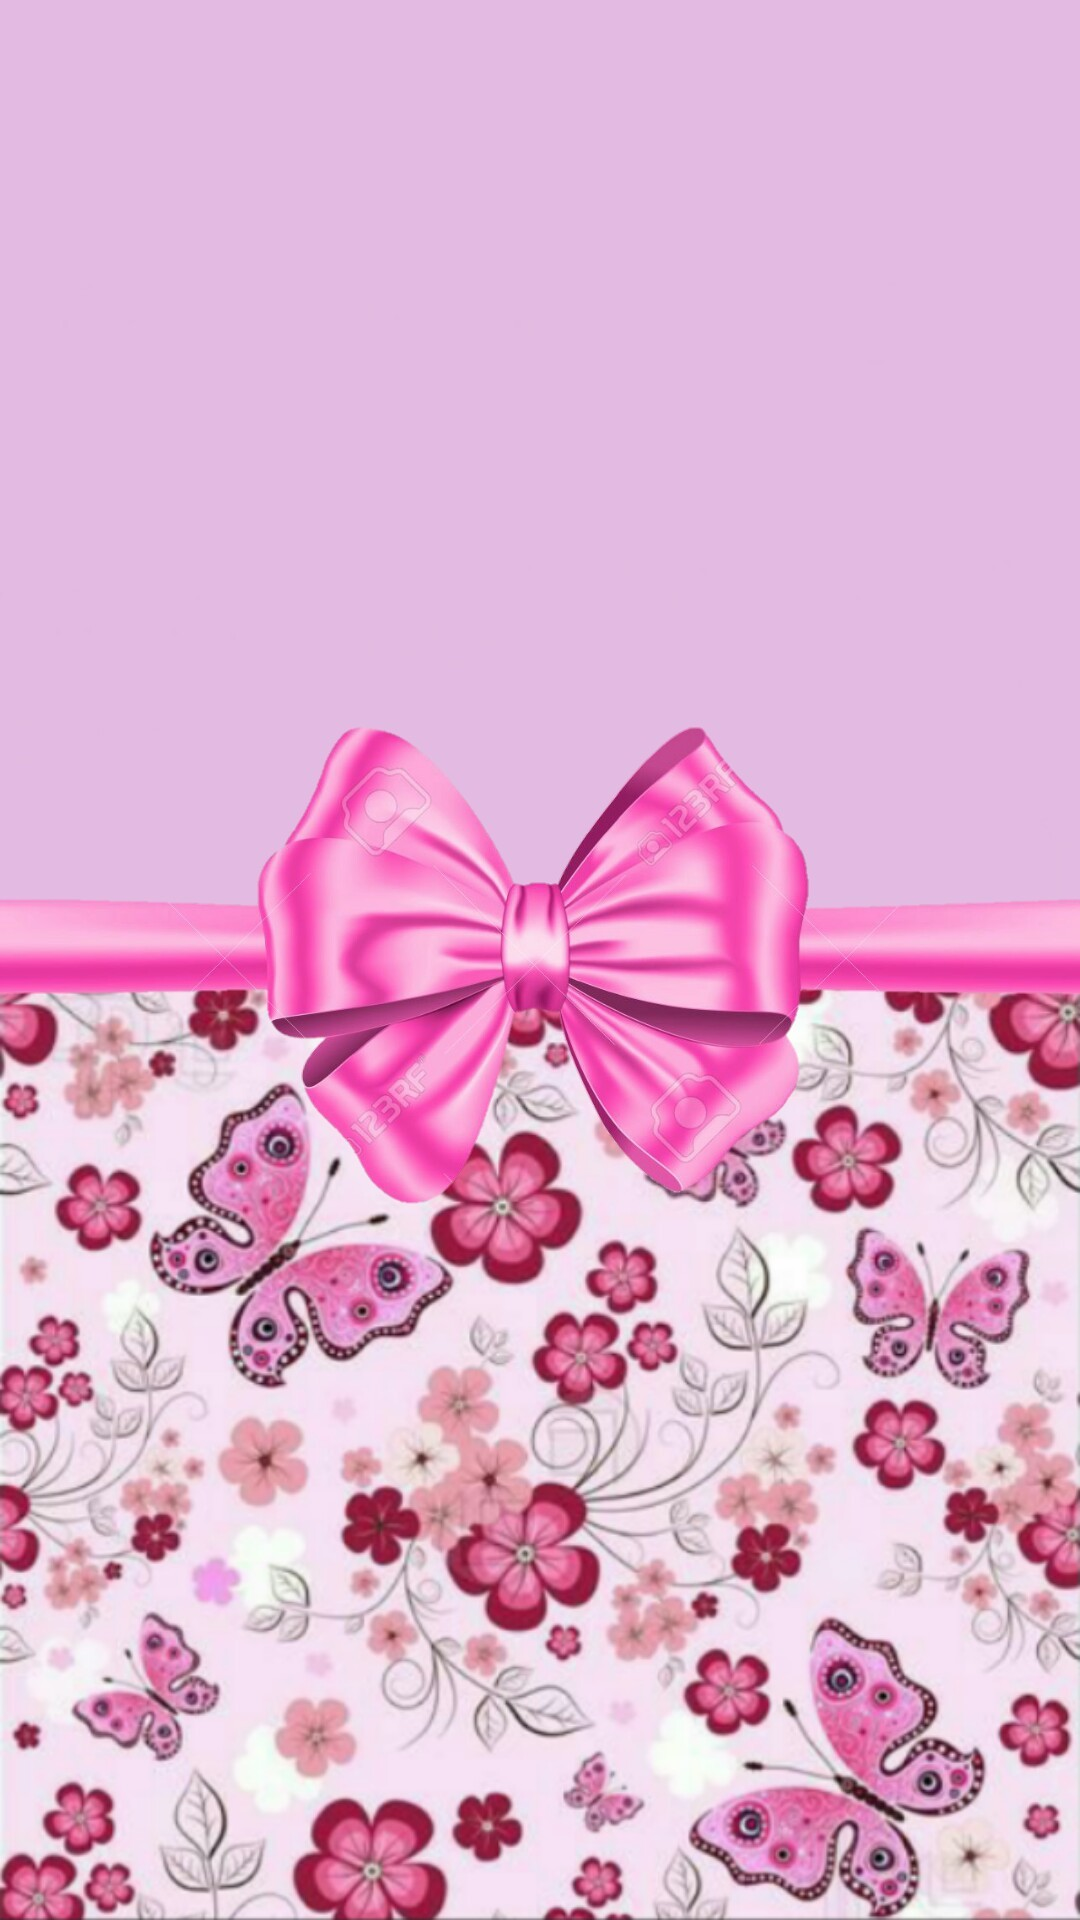 1080x1920 Purple and pink with flowers and bow